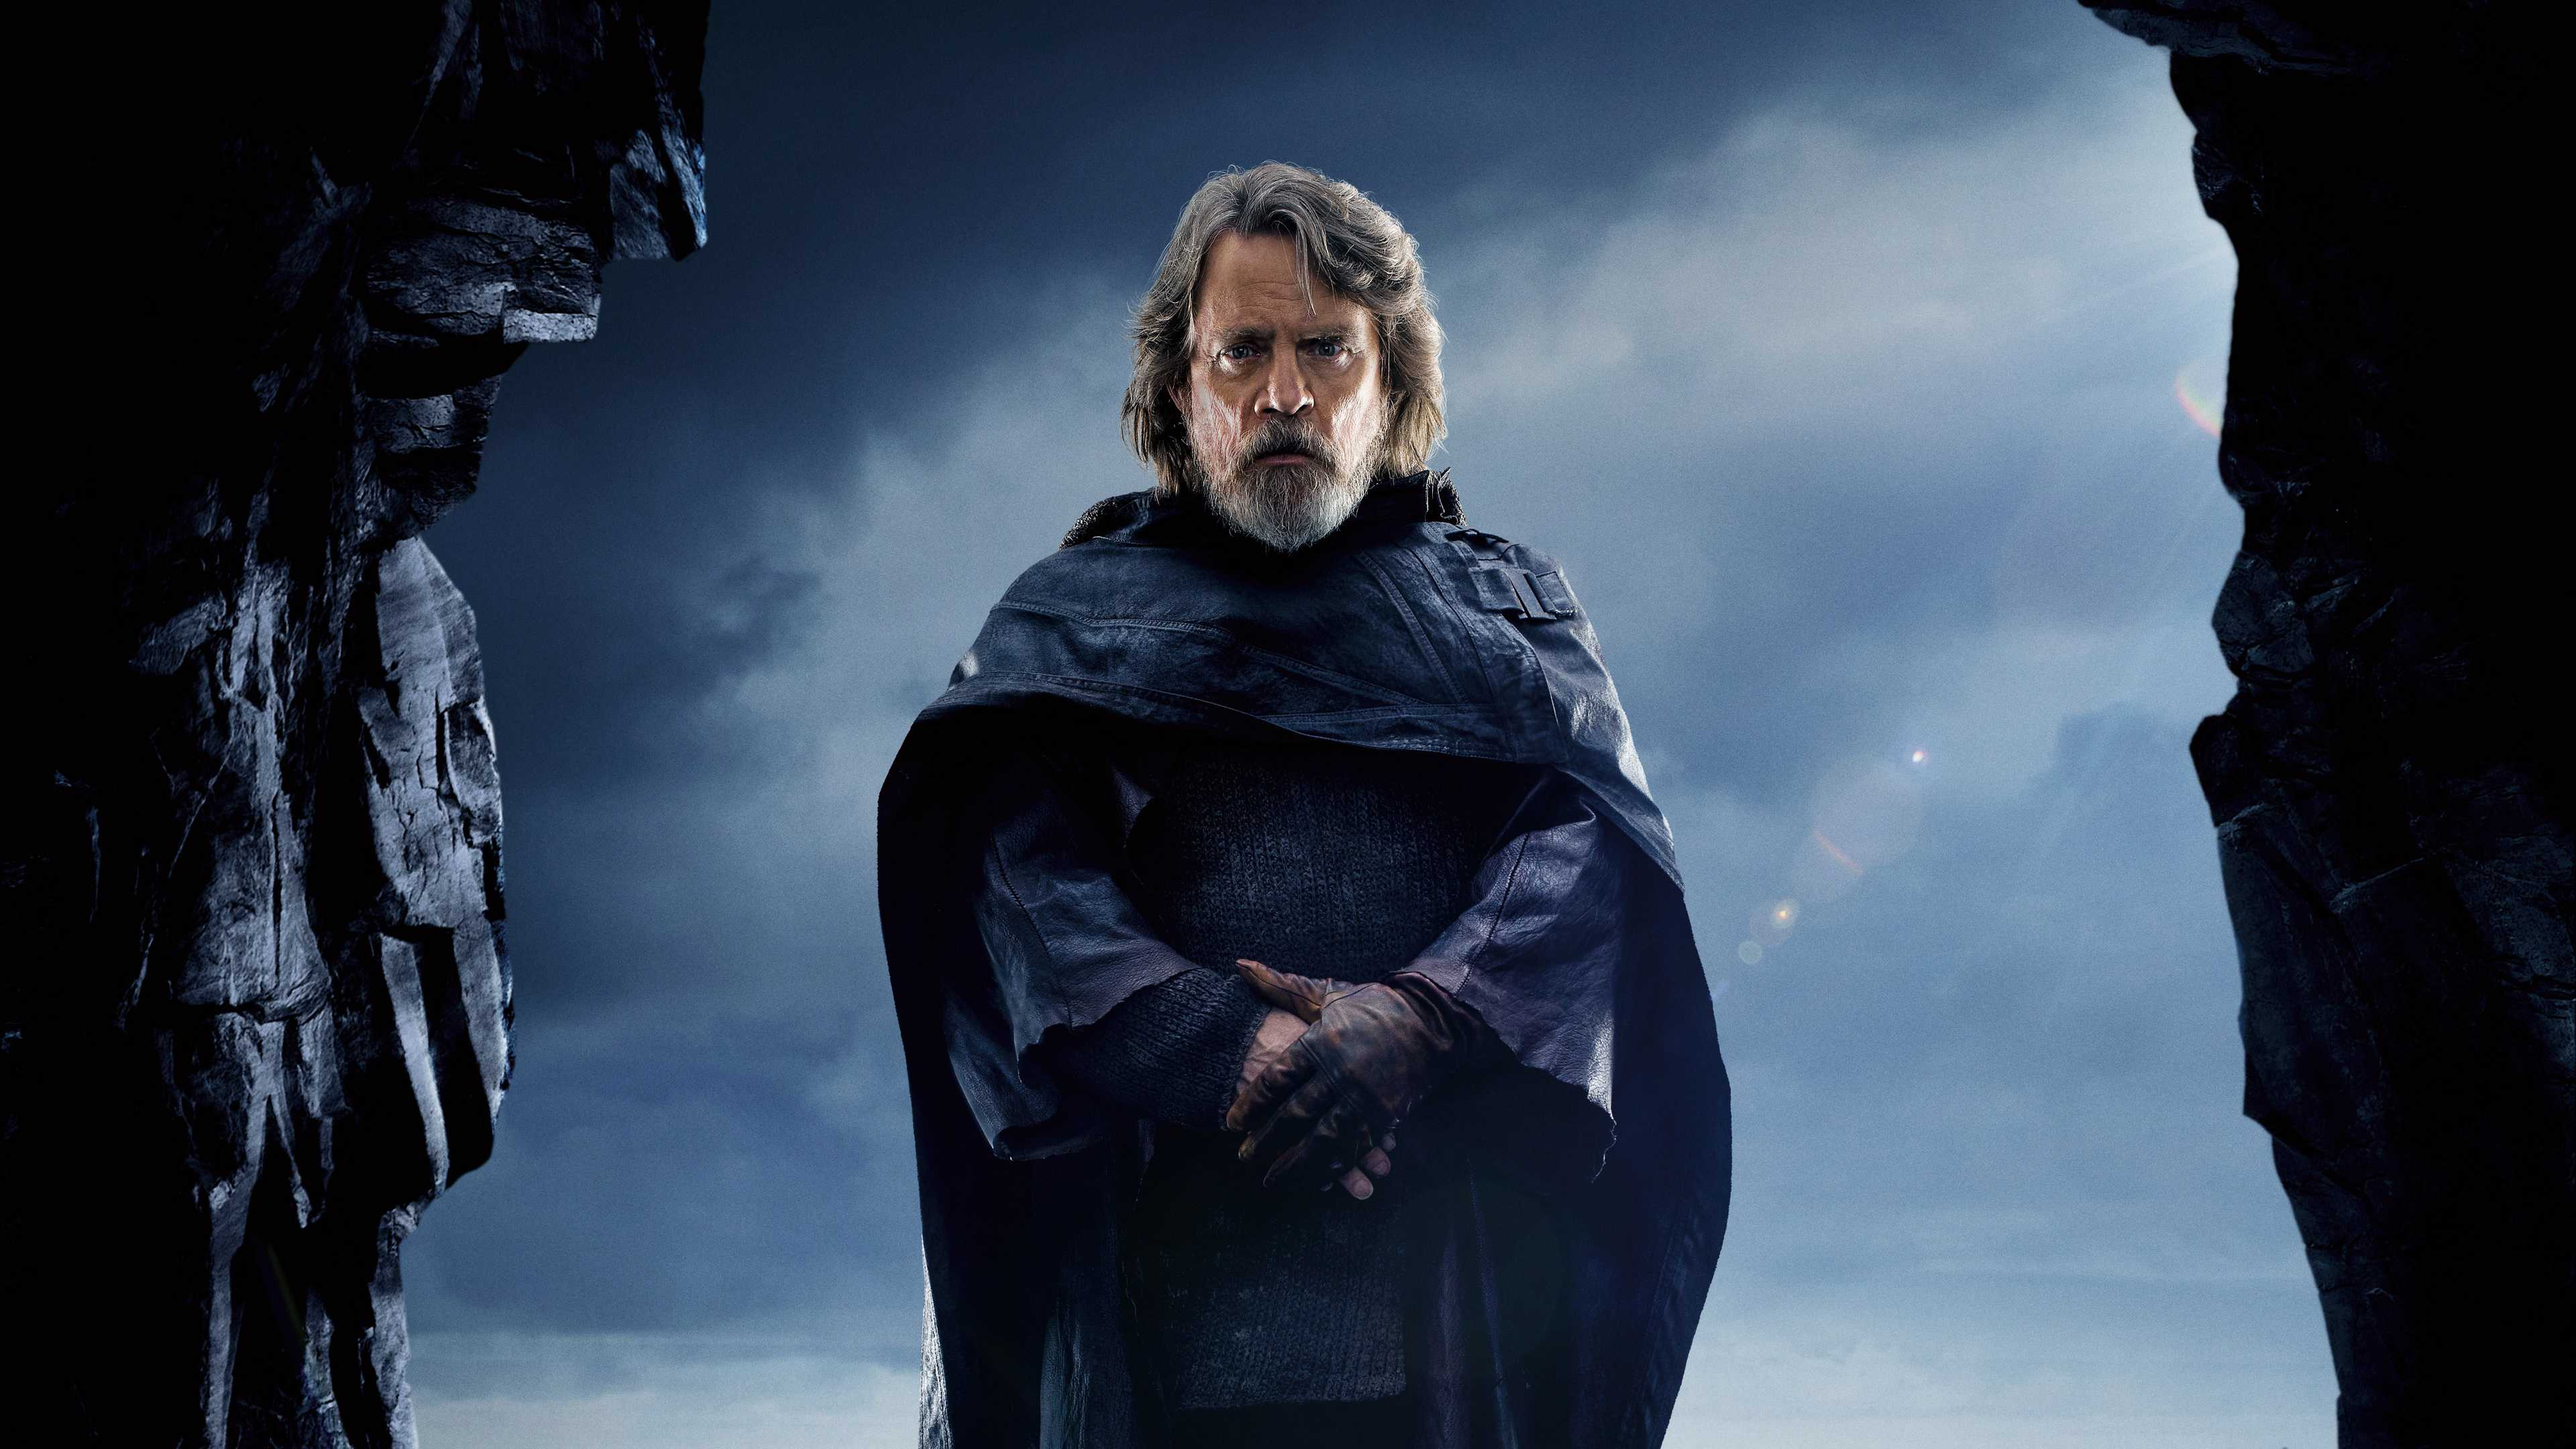 Star Wars The Last Jedi Luke Skywalker Uhd 4k Wallpaper